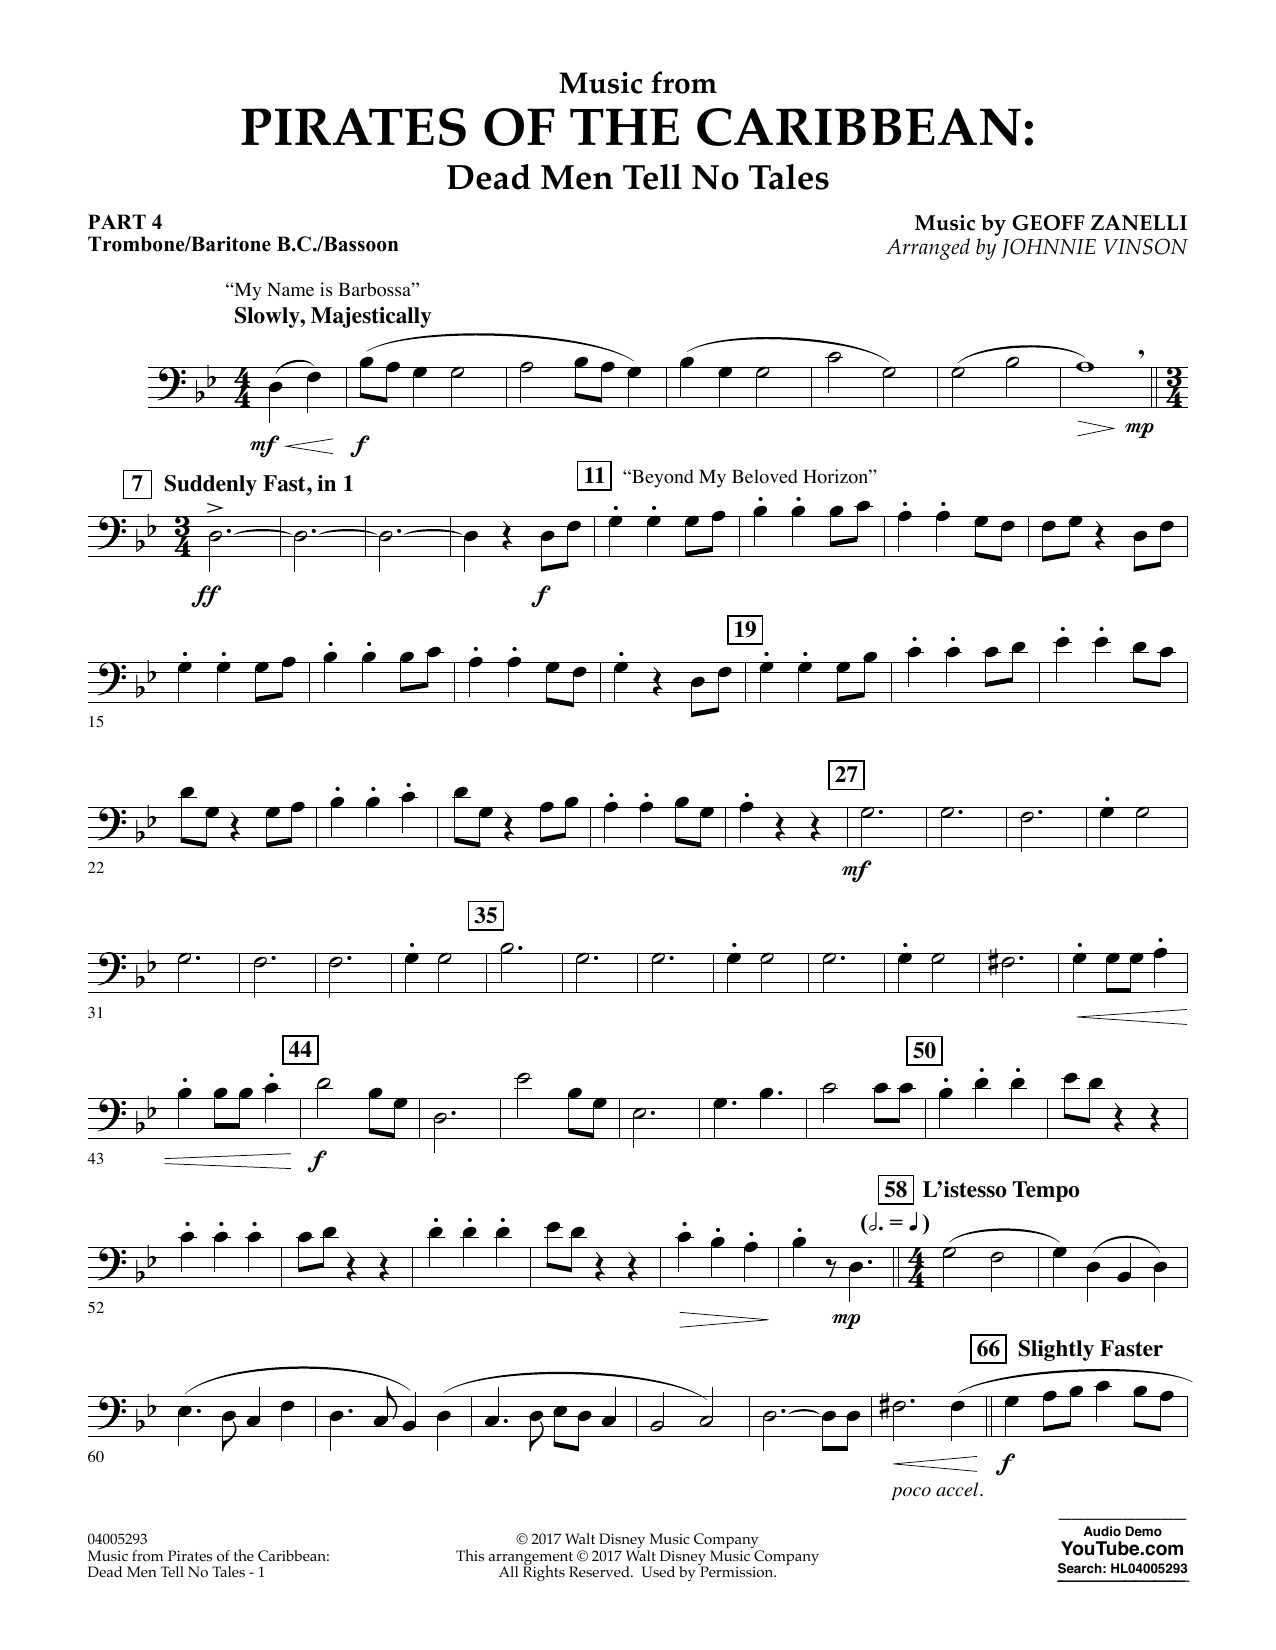 Johnnie Vinson Music from Pirates of the Caribbean: Dead Men Tell No Tales - Pt.4 - Trombone/Bar. B.C./Bsn. sheet music notes and chords. Download Printable PDF.